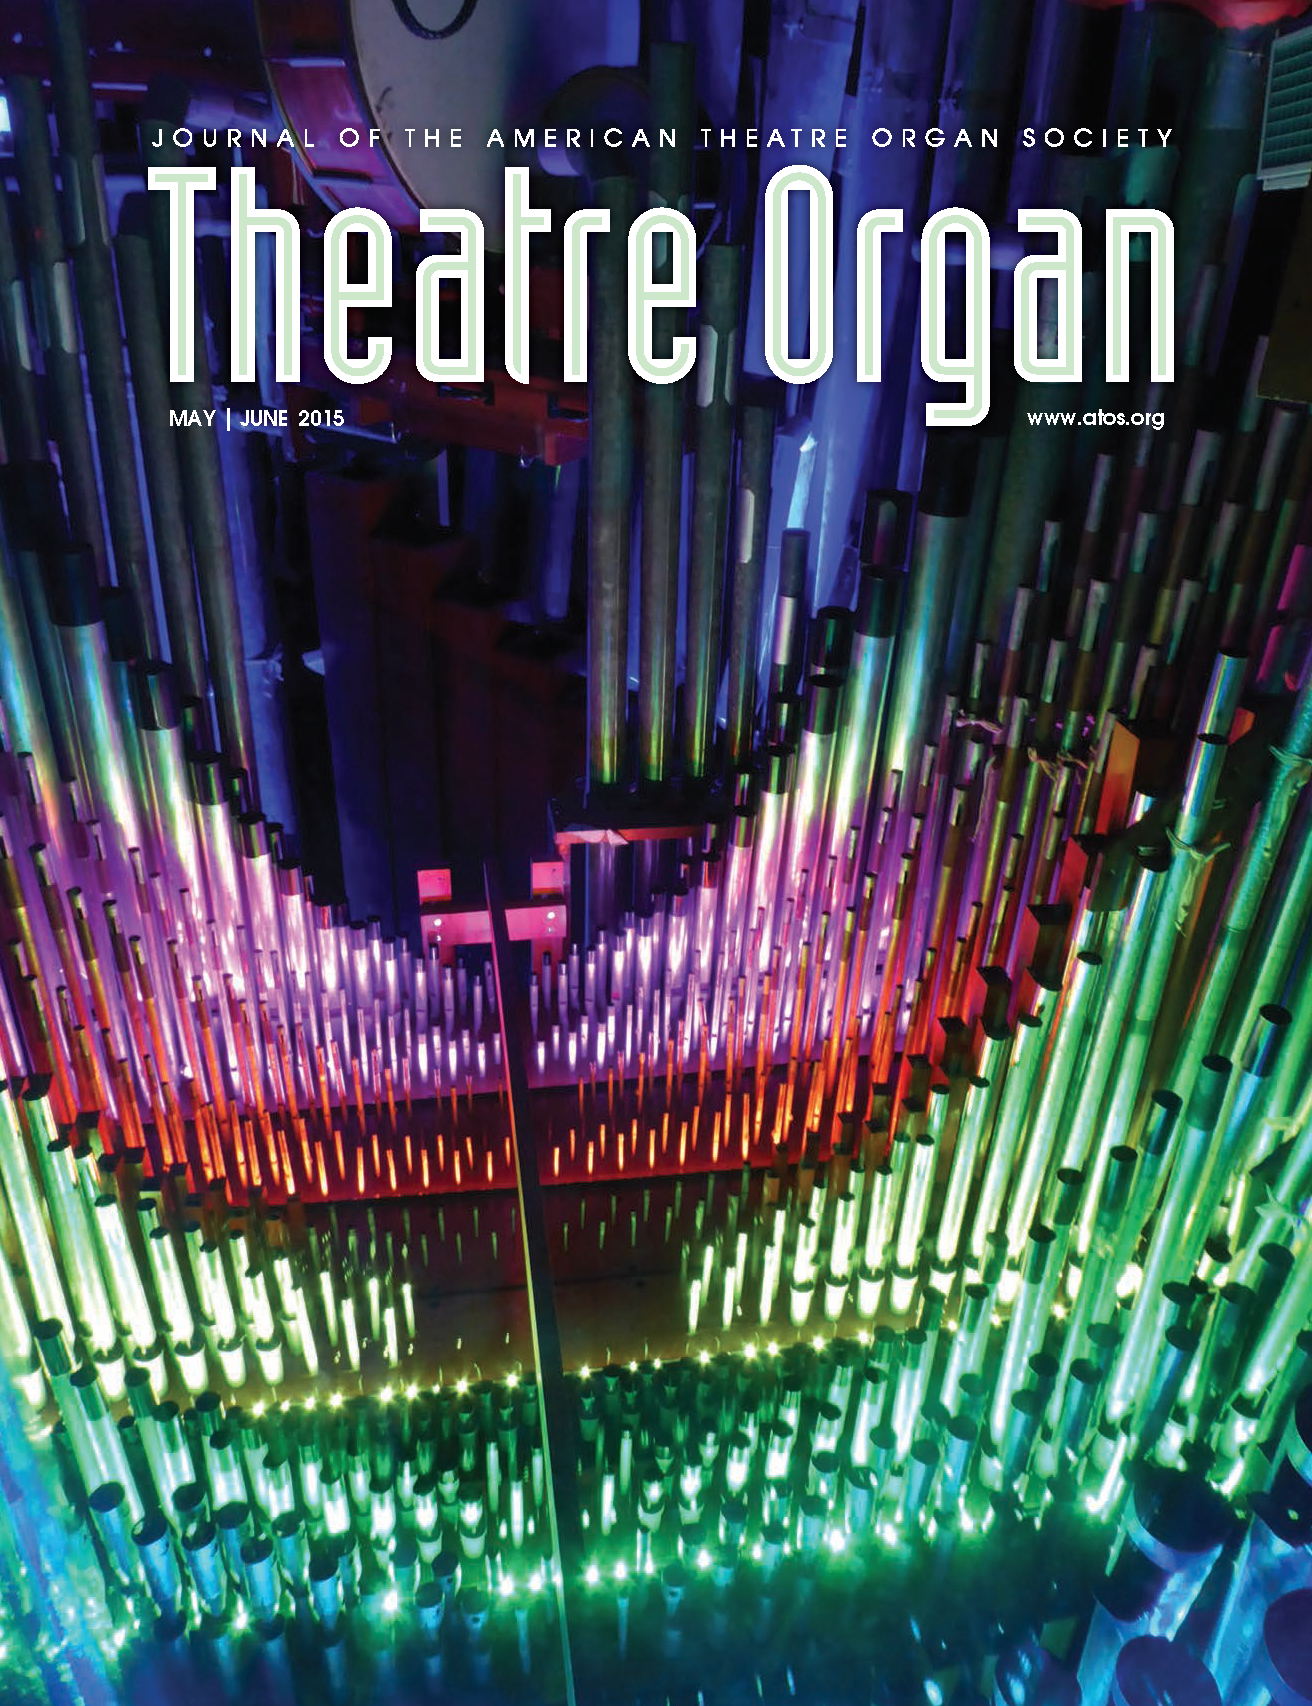 Theatre Organ, May - June 2015, Volume 57, Number 3